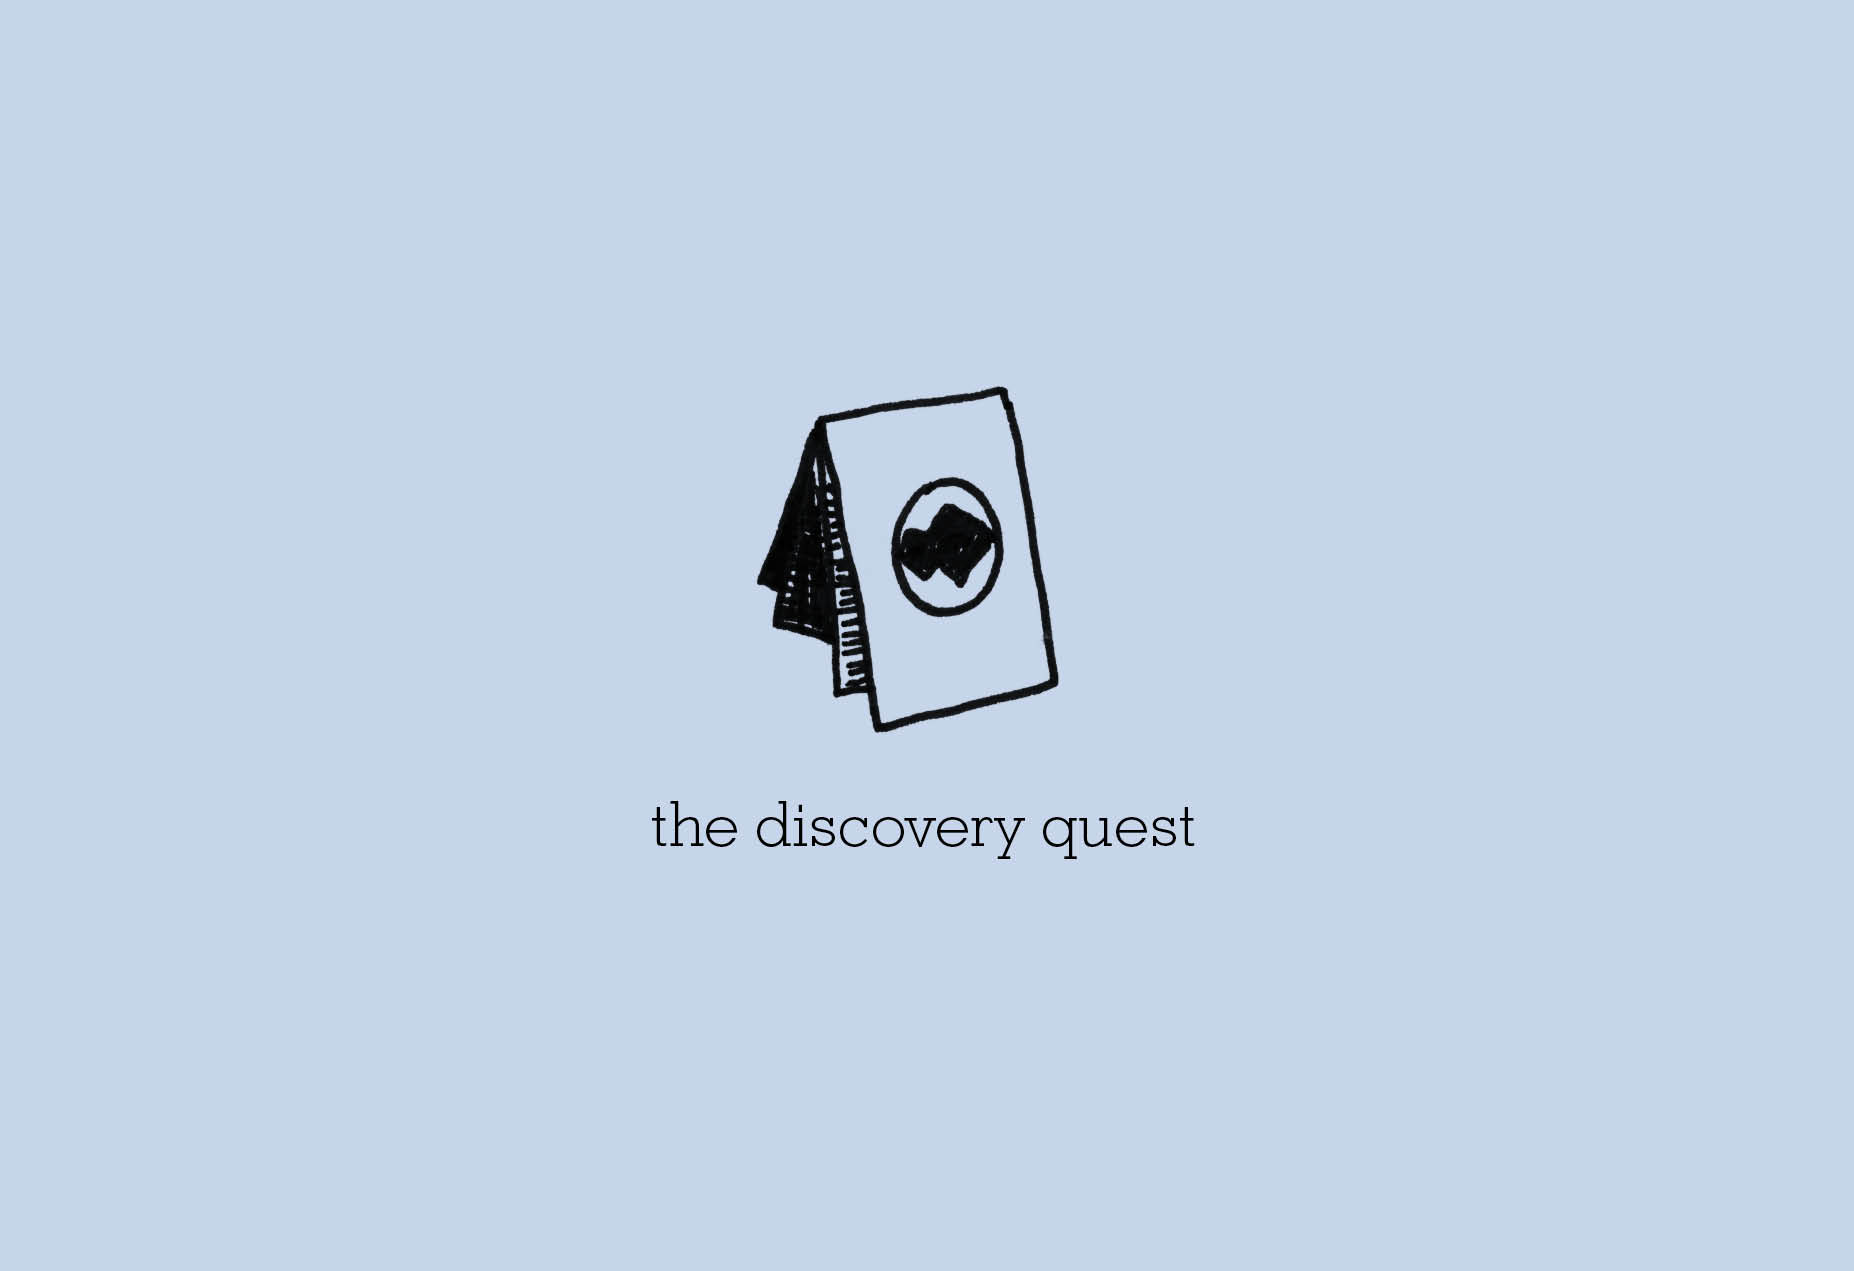 THE DISCOVERY QUEST